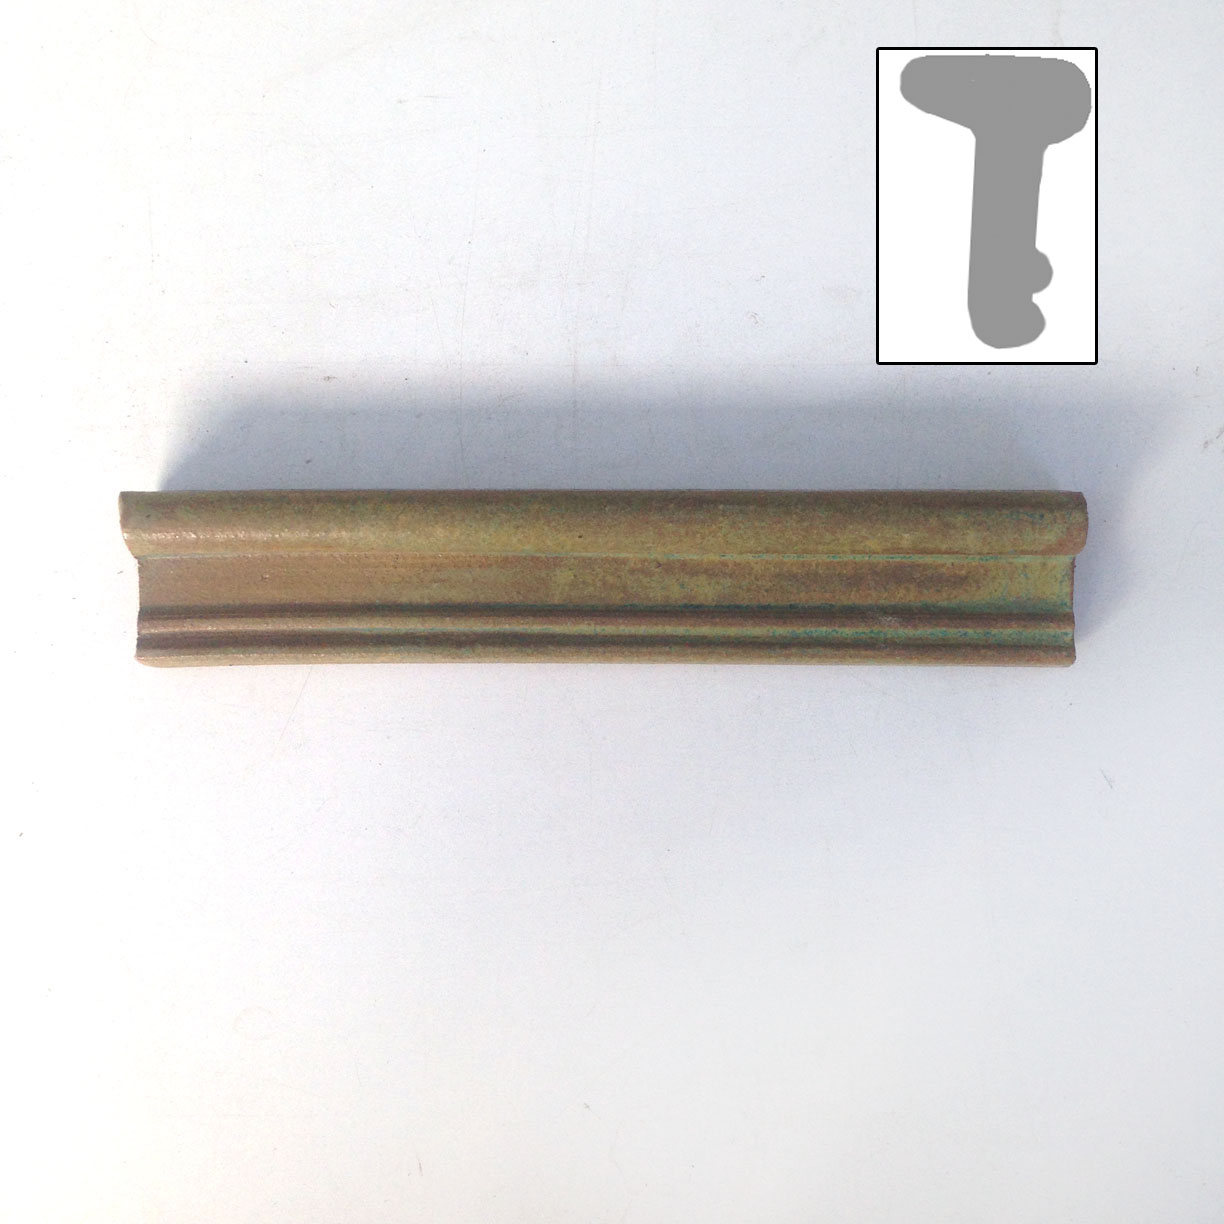 "Moulding Cap - 1.125""x1.375"" cut to length"